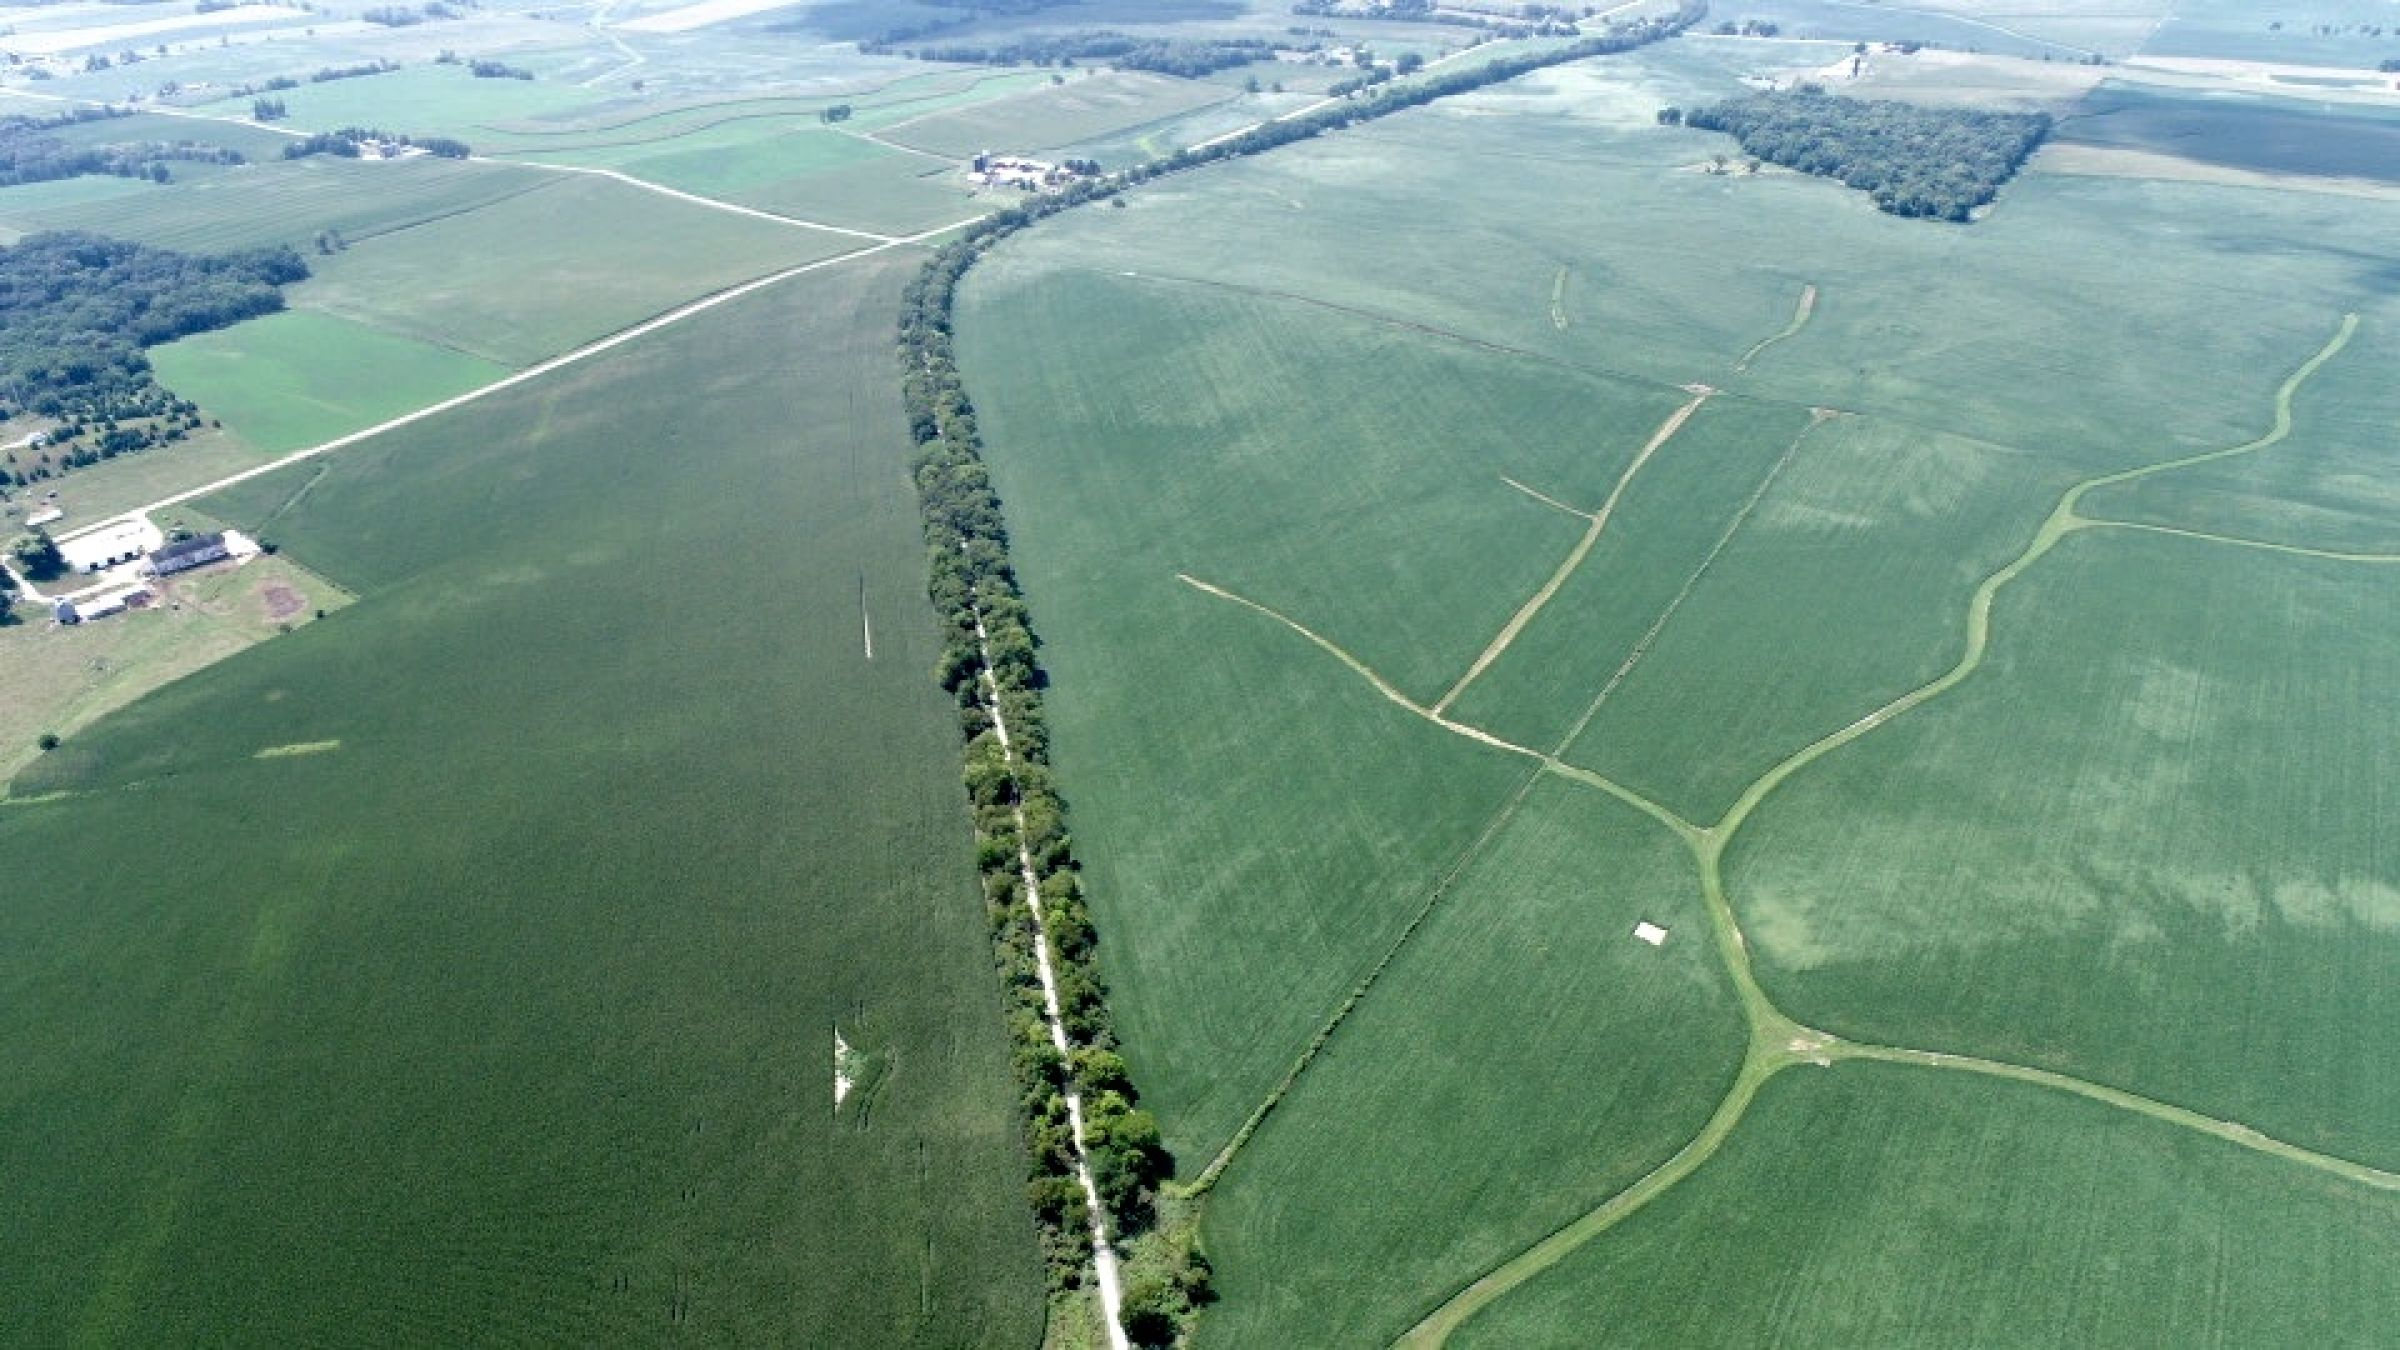 land-green-county-wisconsin-80-acres-listing-number-15692-5-2021-08-19-205612.jpg